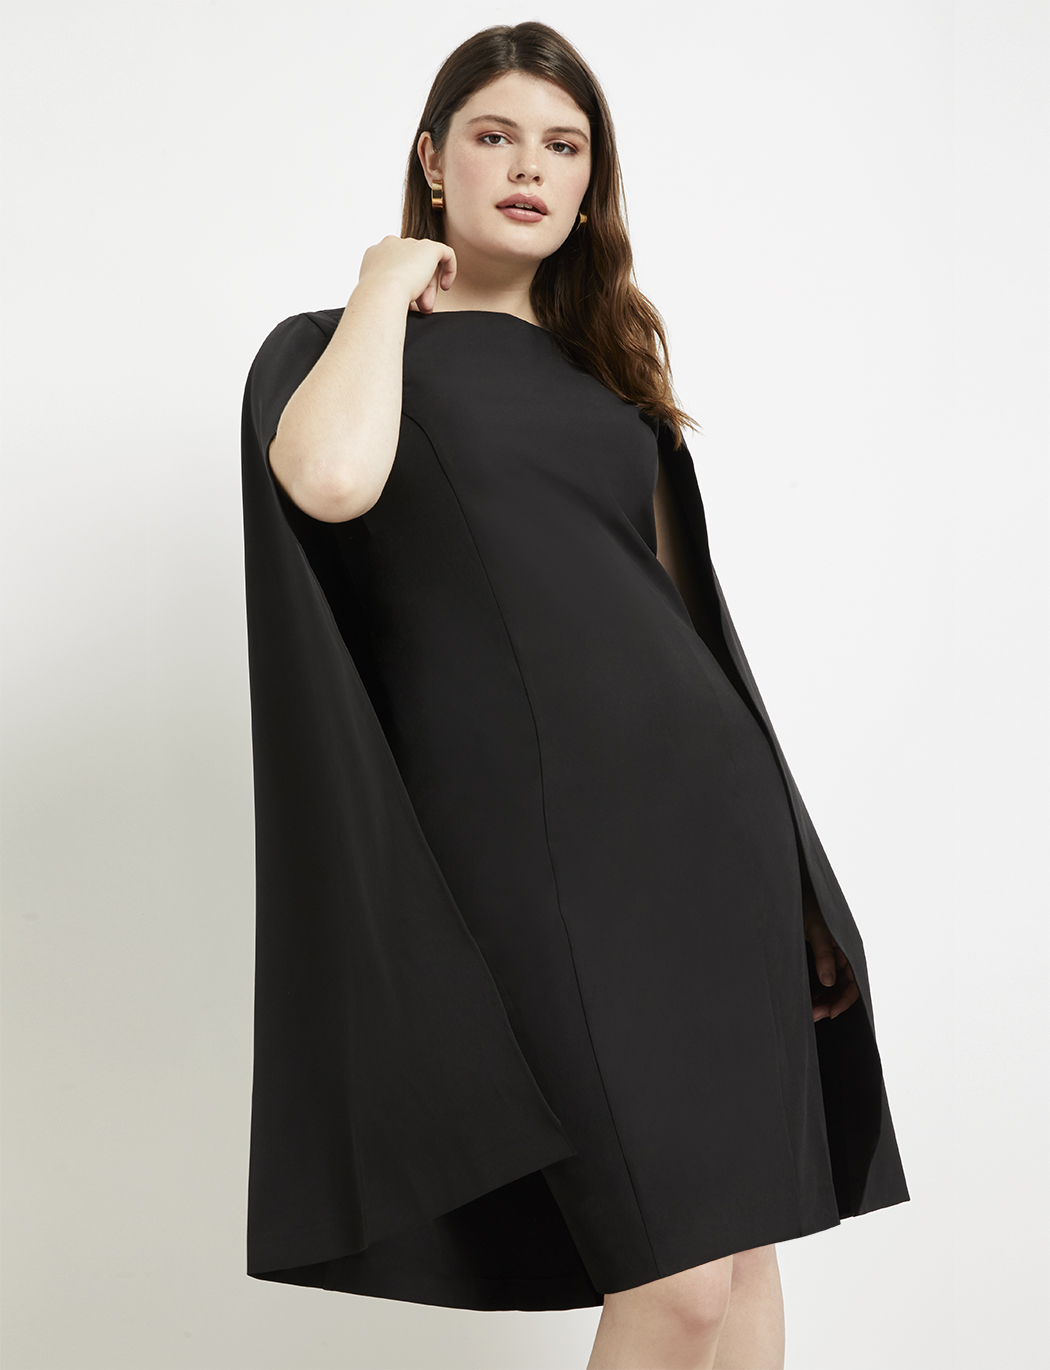 Studio Cape Dress